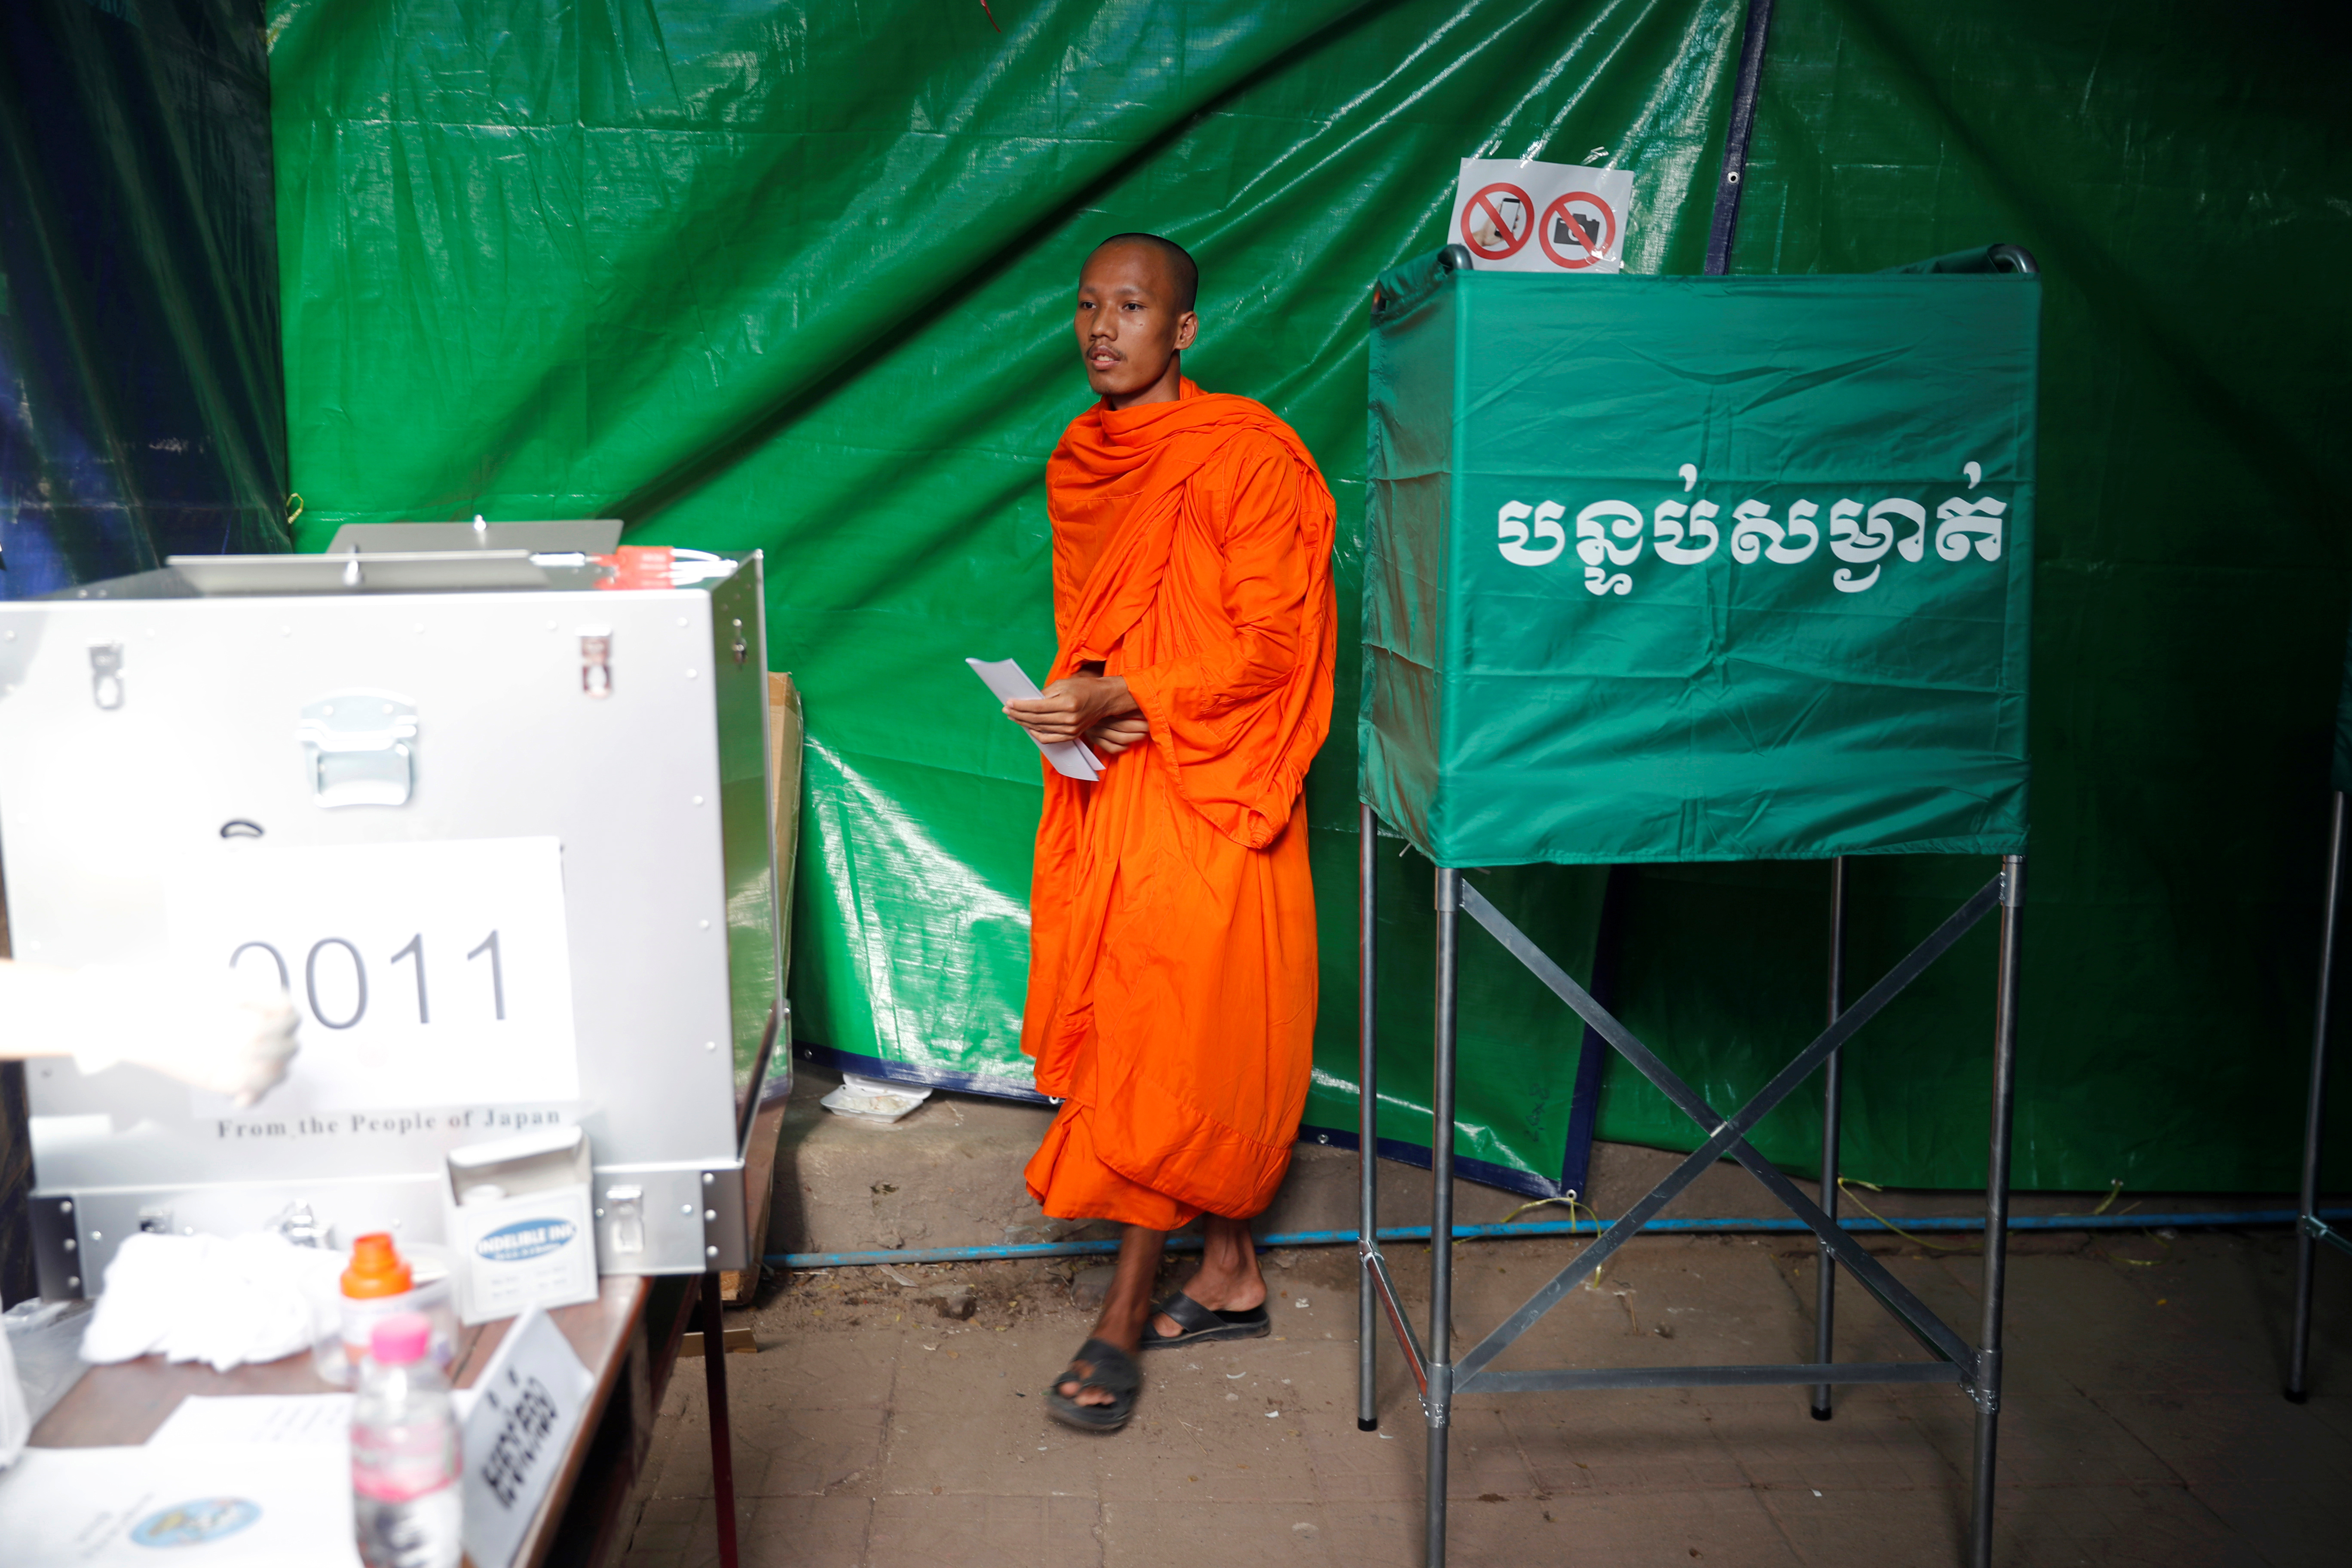 A monk votes at a polling station during a general election in Phnom Penh, Cambodia, July 29, 2018.